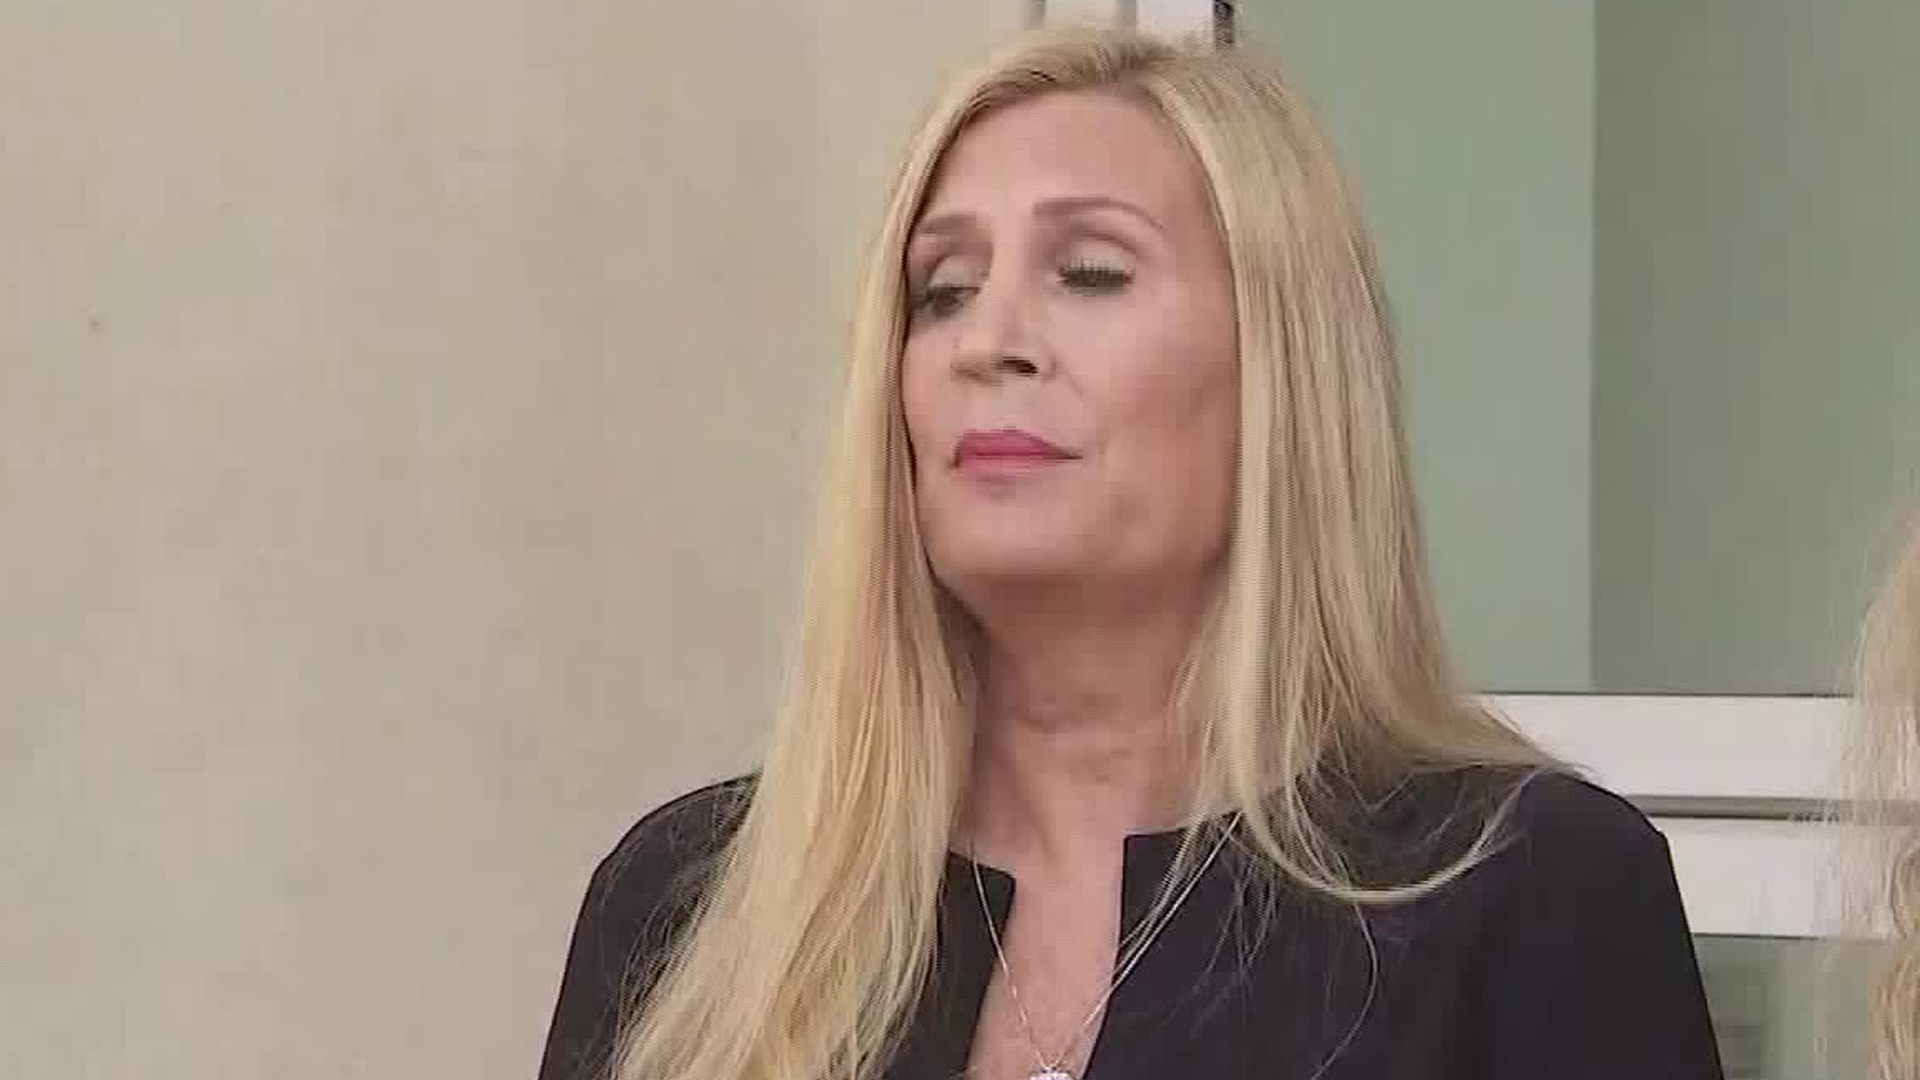 A woman who only identified herself as Julie detailed allegations against James Heaps, a former gynecologist for the University of California Los Angeles, at a news conference in Del Aire on Nov. 6, 2019. (Credit: KTLA)